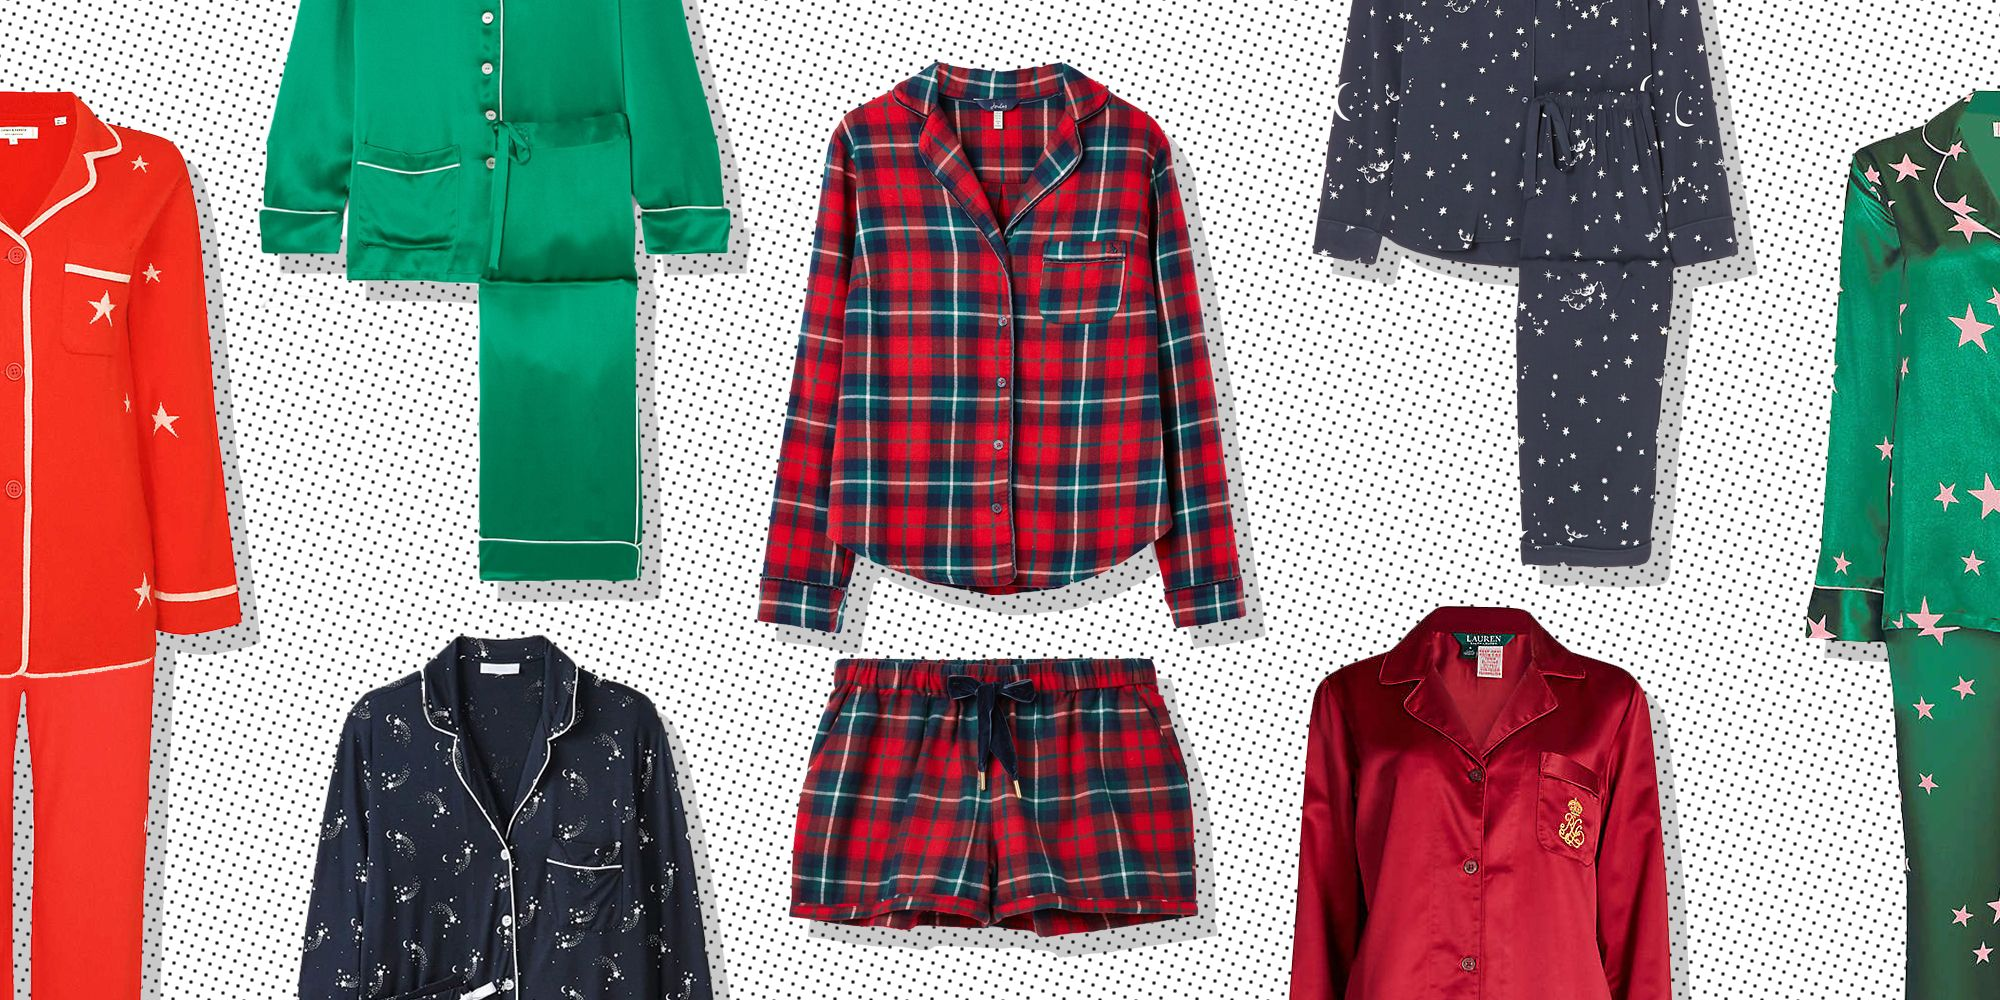 The Best Christmas Pyjamas And Festive Loungewear To Live In This December